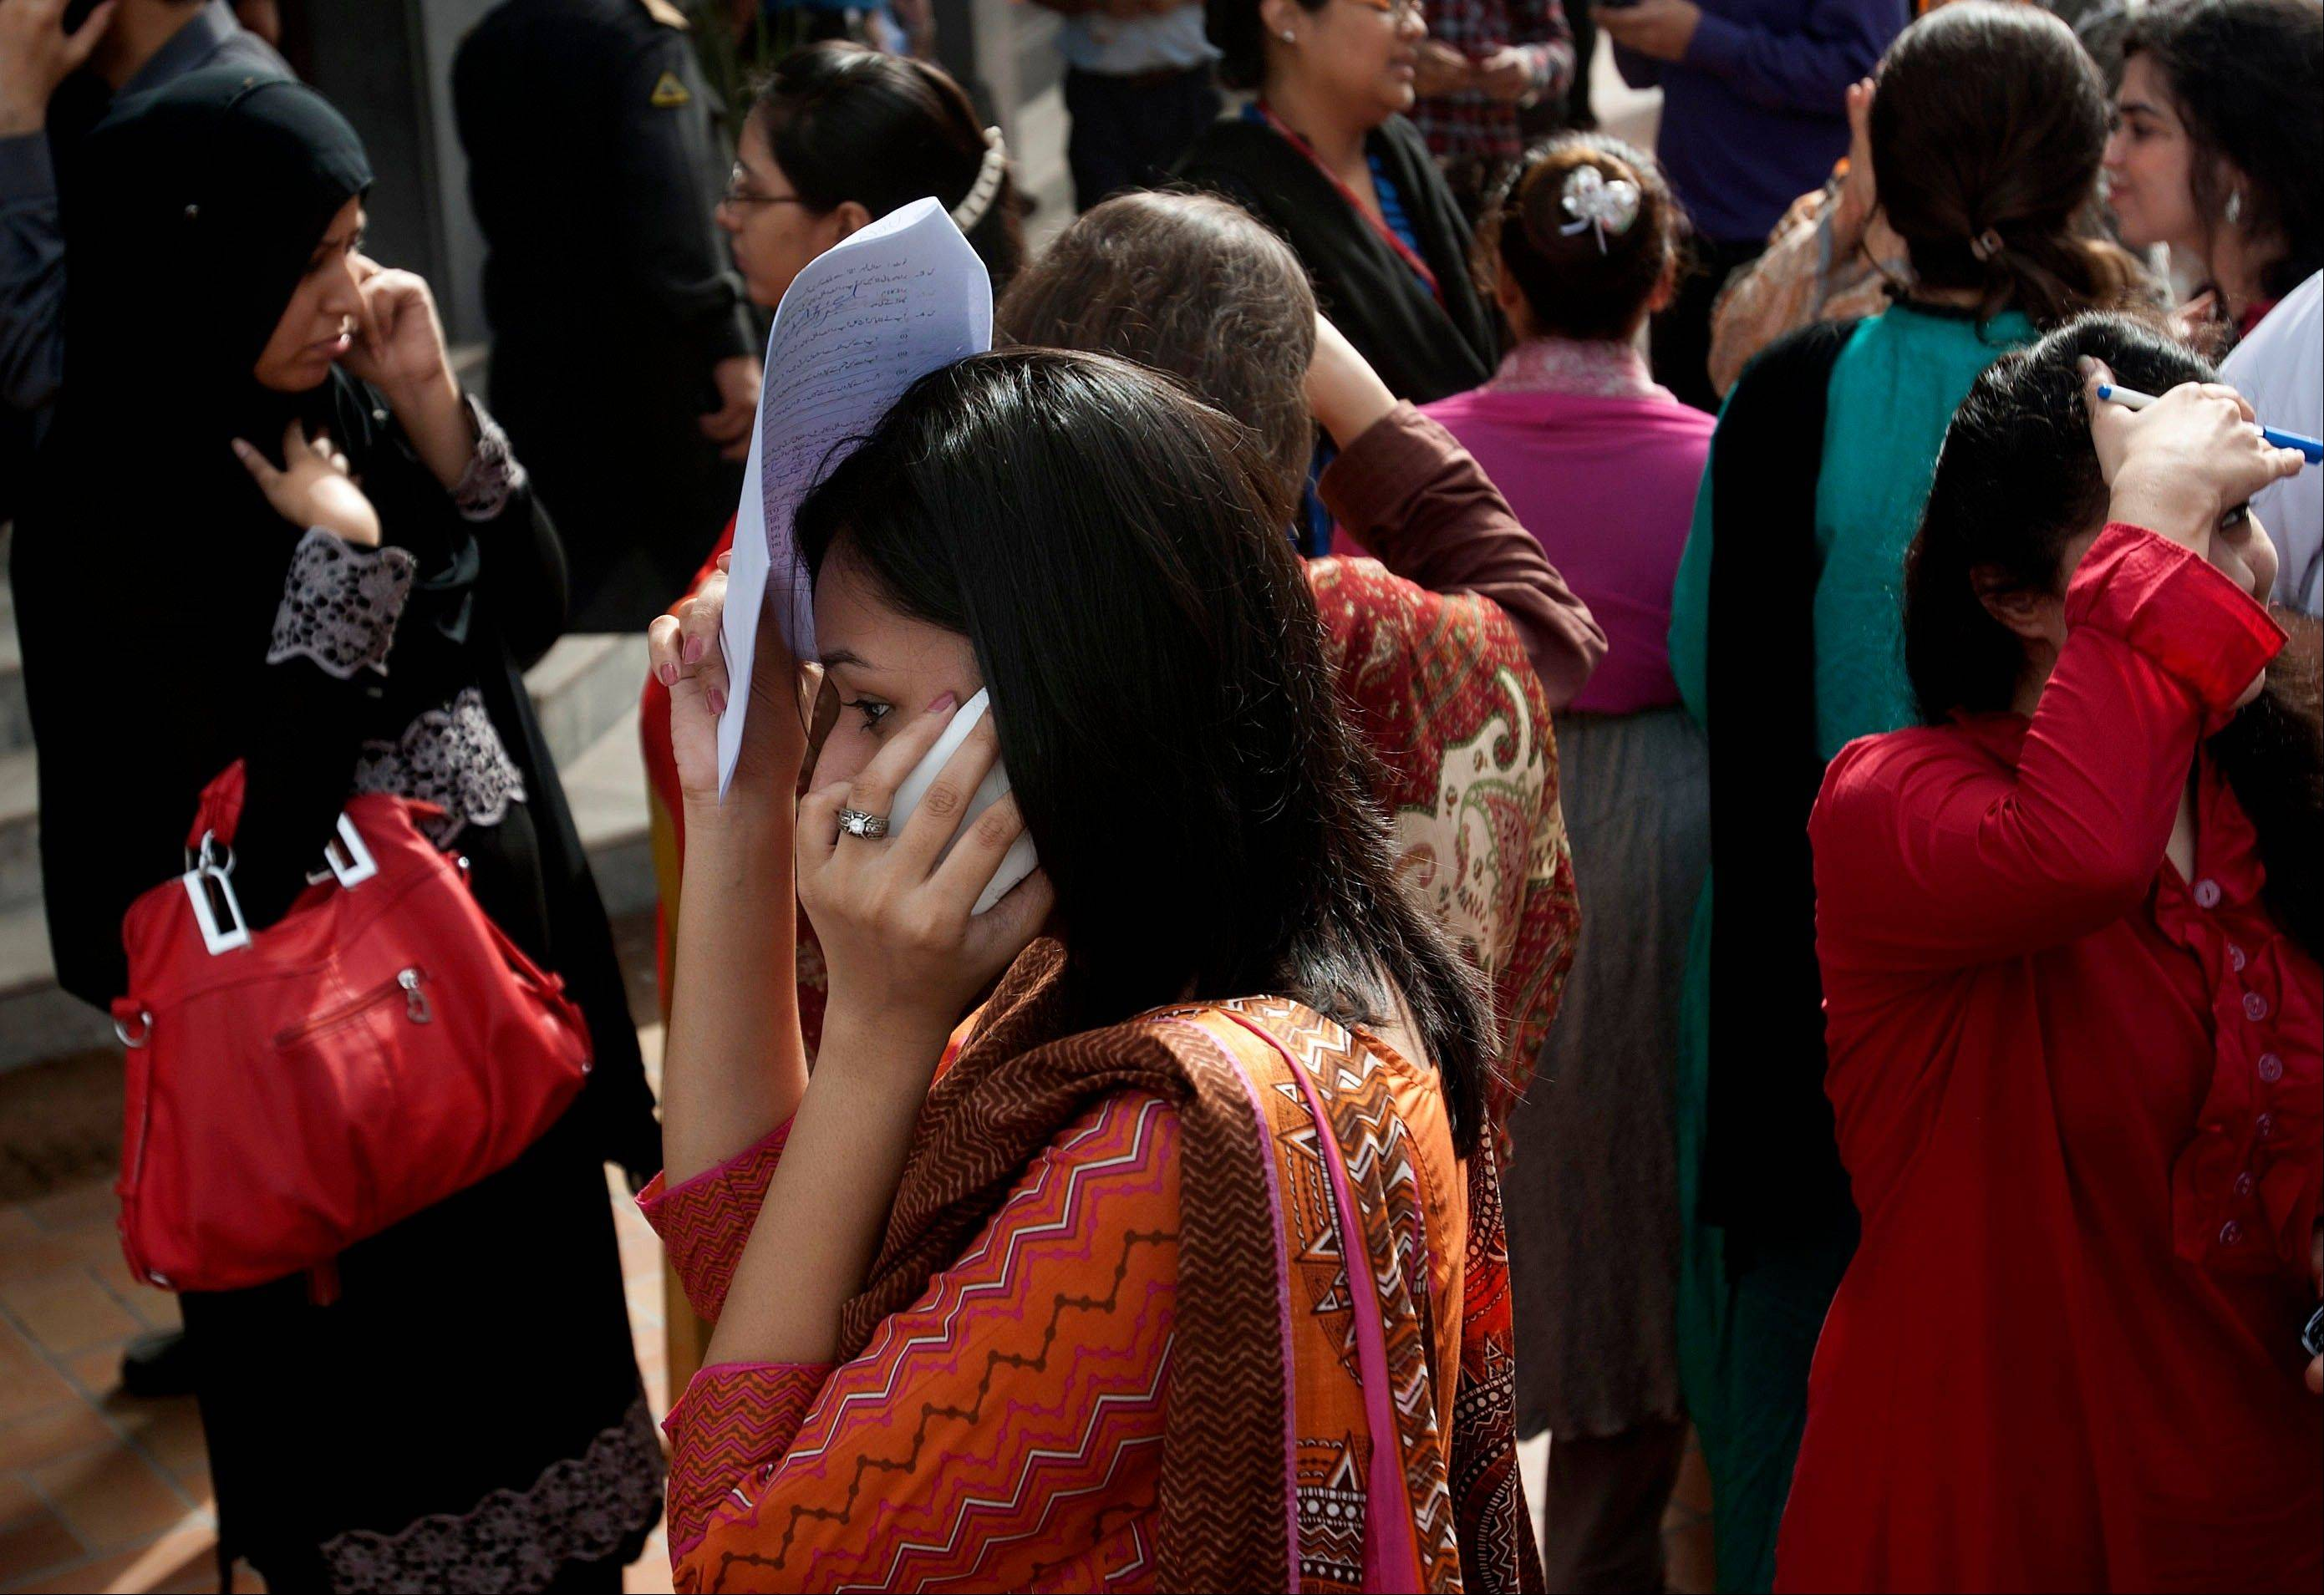 People evacuate buildings and call their relatives after a tremor of an earthquake was felt in Karachi, Pakistan, Tuesday, April 16, 2013. A major earthquake described as the strongest to hit Iran in more than half a century flatted homes and offices Tuesday near Iran's border with Pakistan, killing at least tens of people in the sparsely populated region and swaying buildings as far away as New Delhi and the skyscrapers in Dubai and Bahrain.